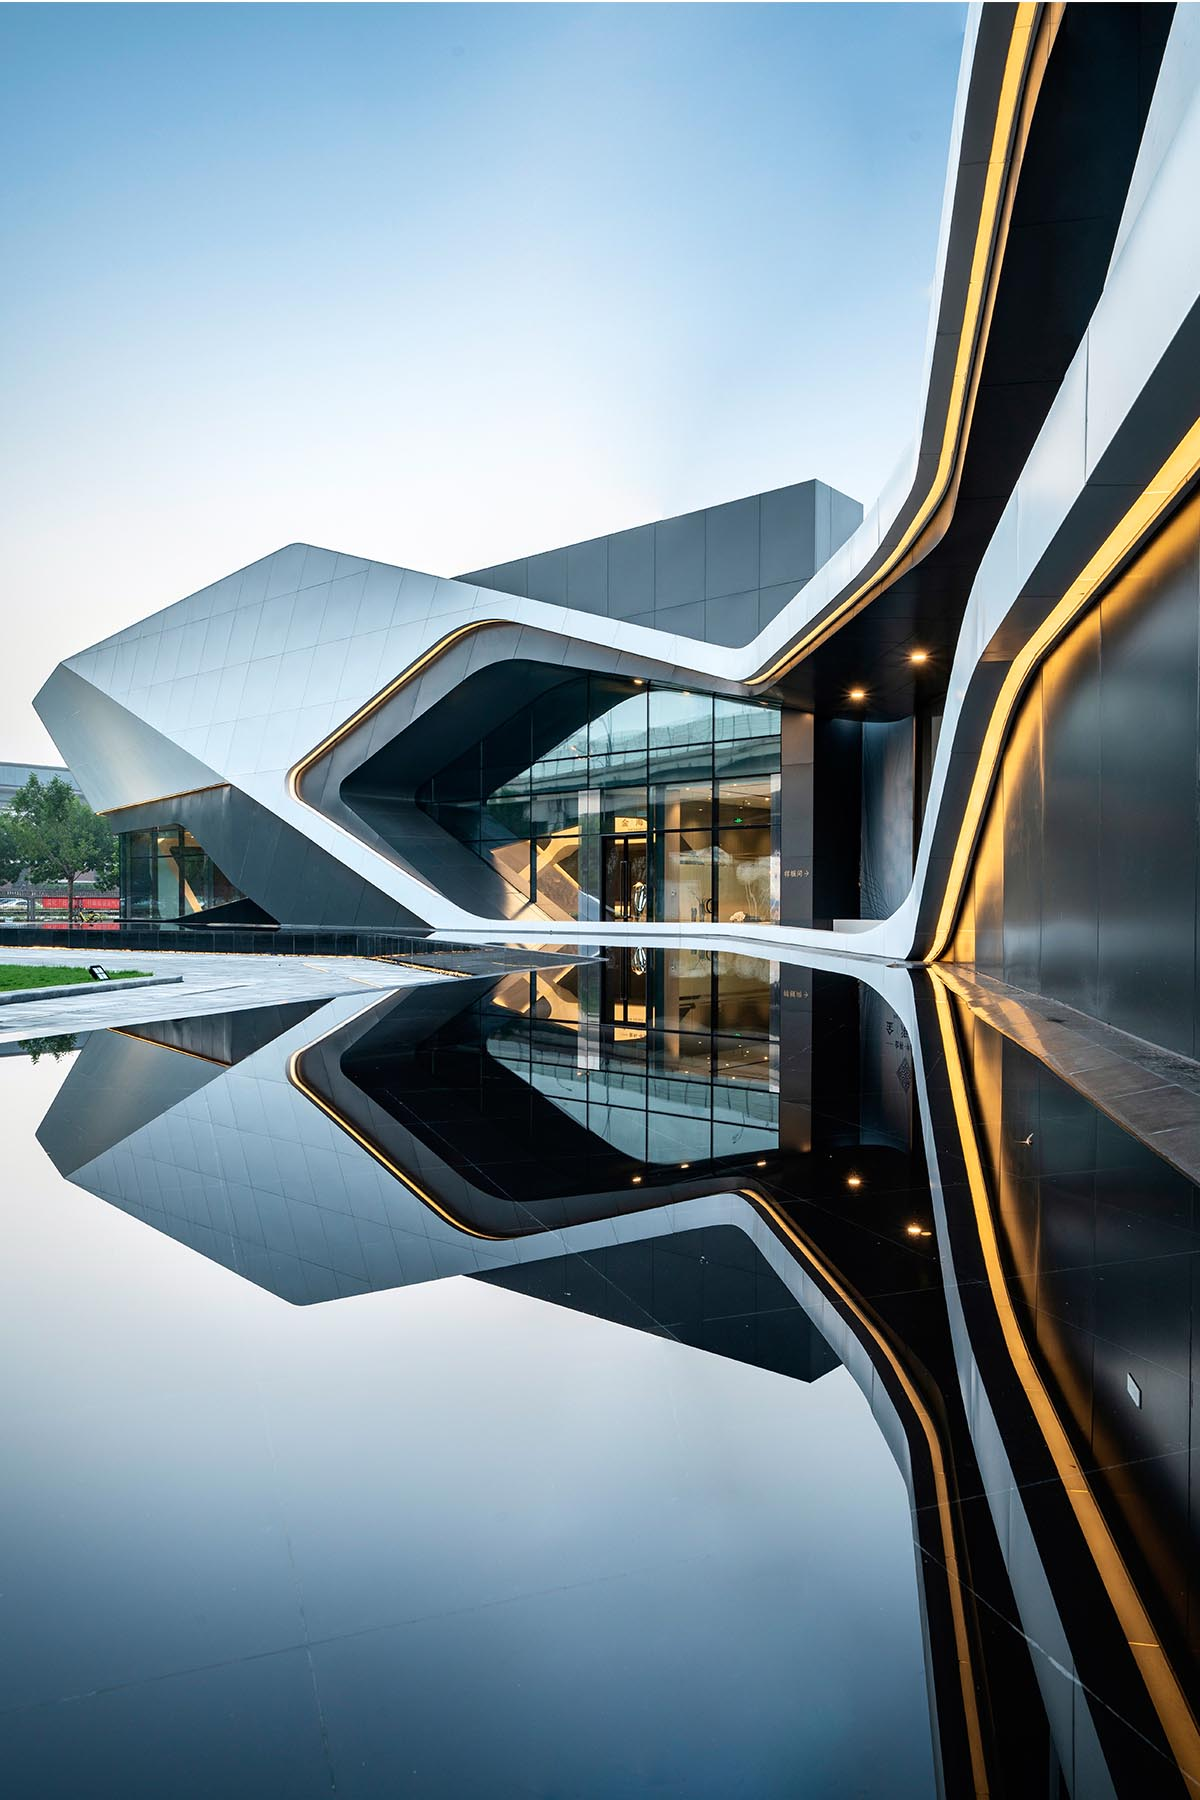 A modern building named 'Navigator' that was designed by Kris Lin.